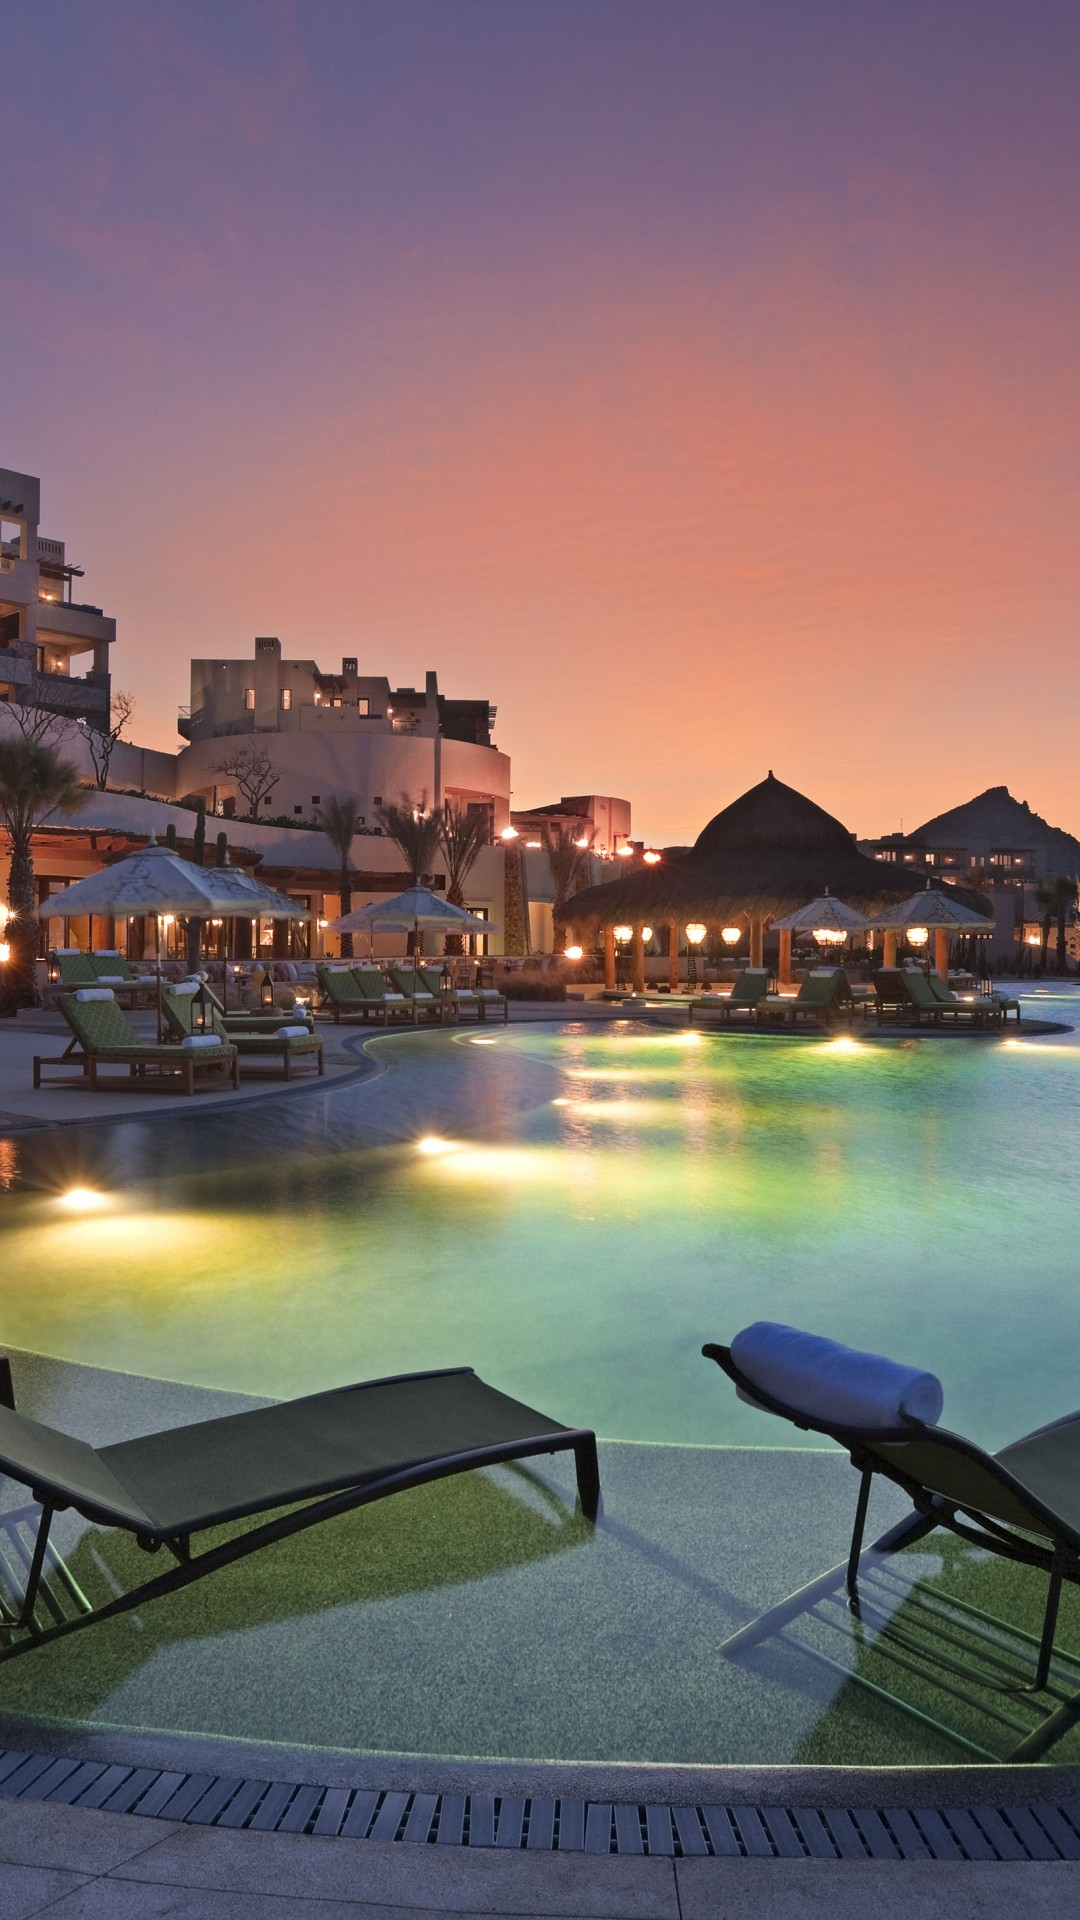 Wallpaper Cabo San Lucas Mexico Resort Hotel Sunset